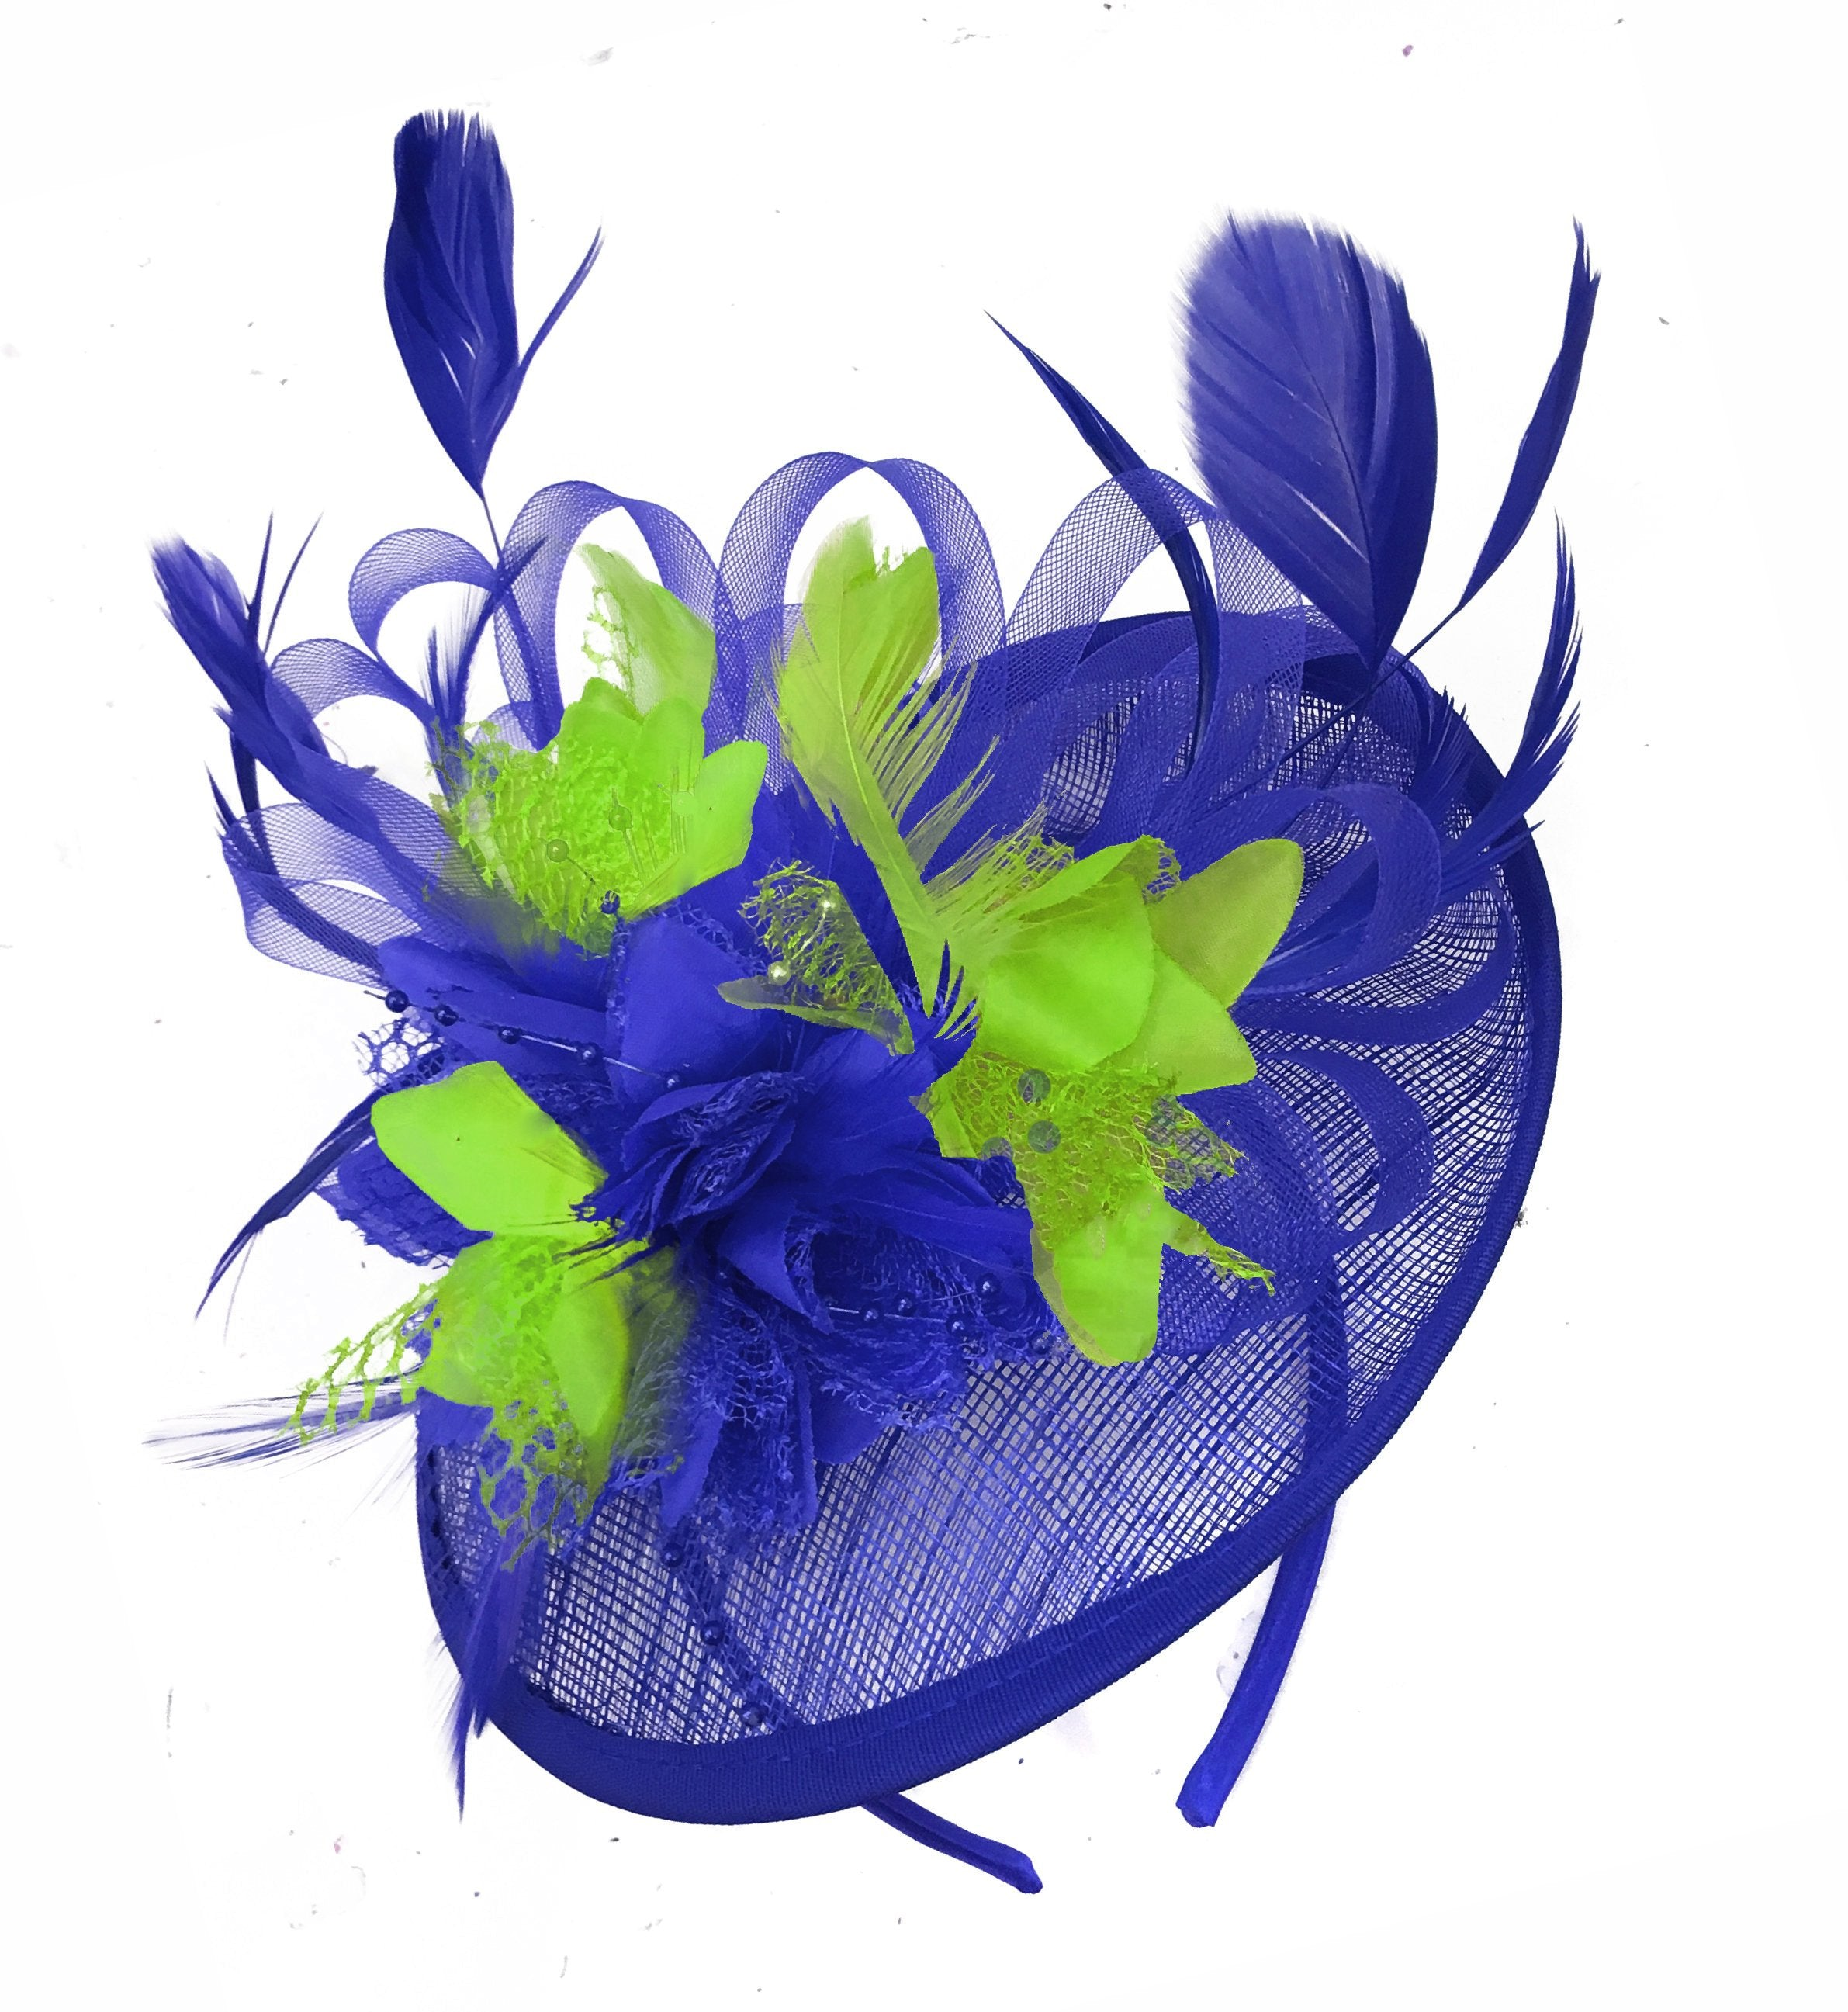 Caprilite Blue and Lime Sinamay Disc Saucer Fascinator Hat for Women Weddings Headband